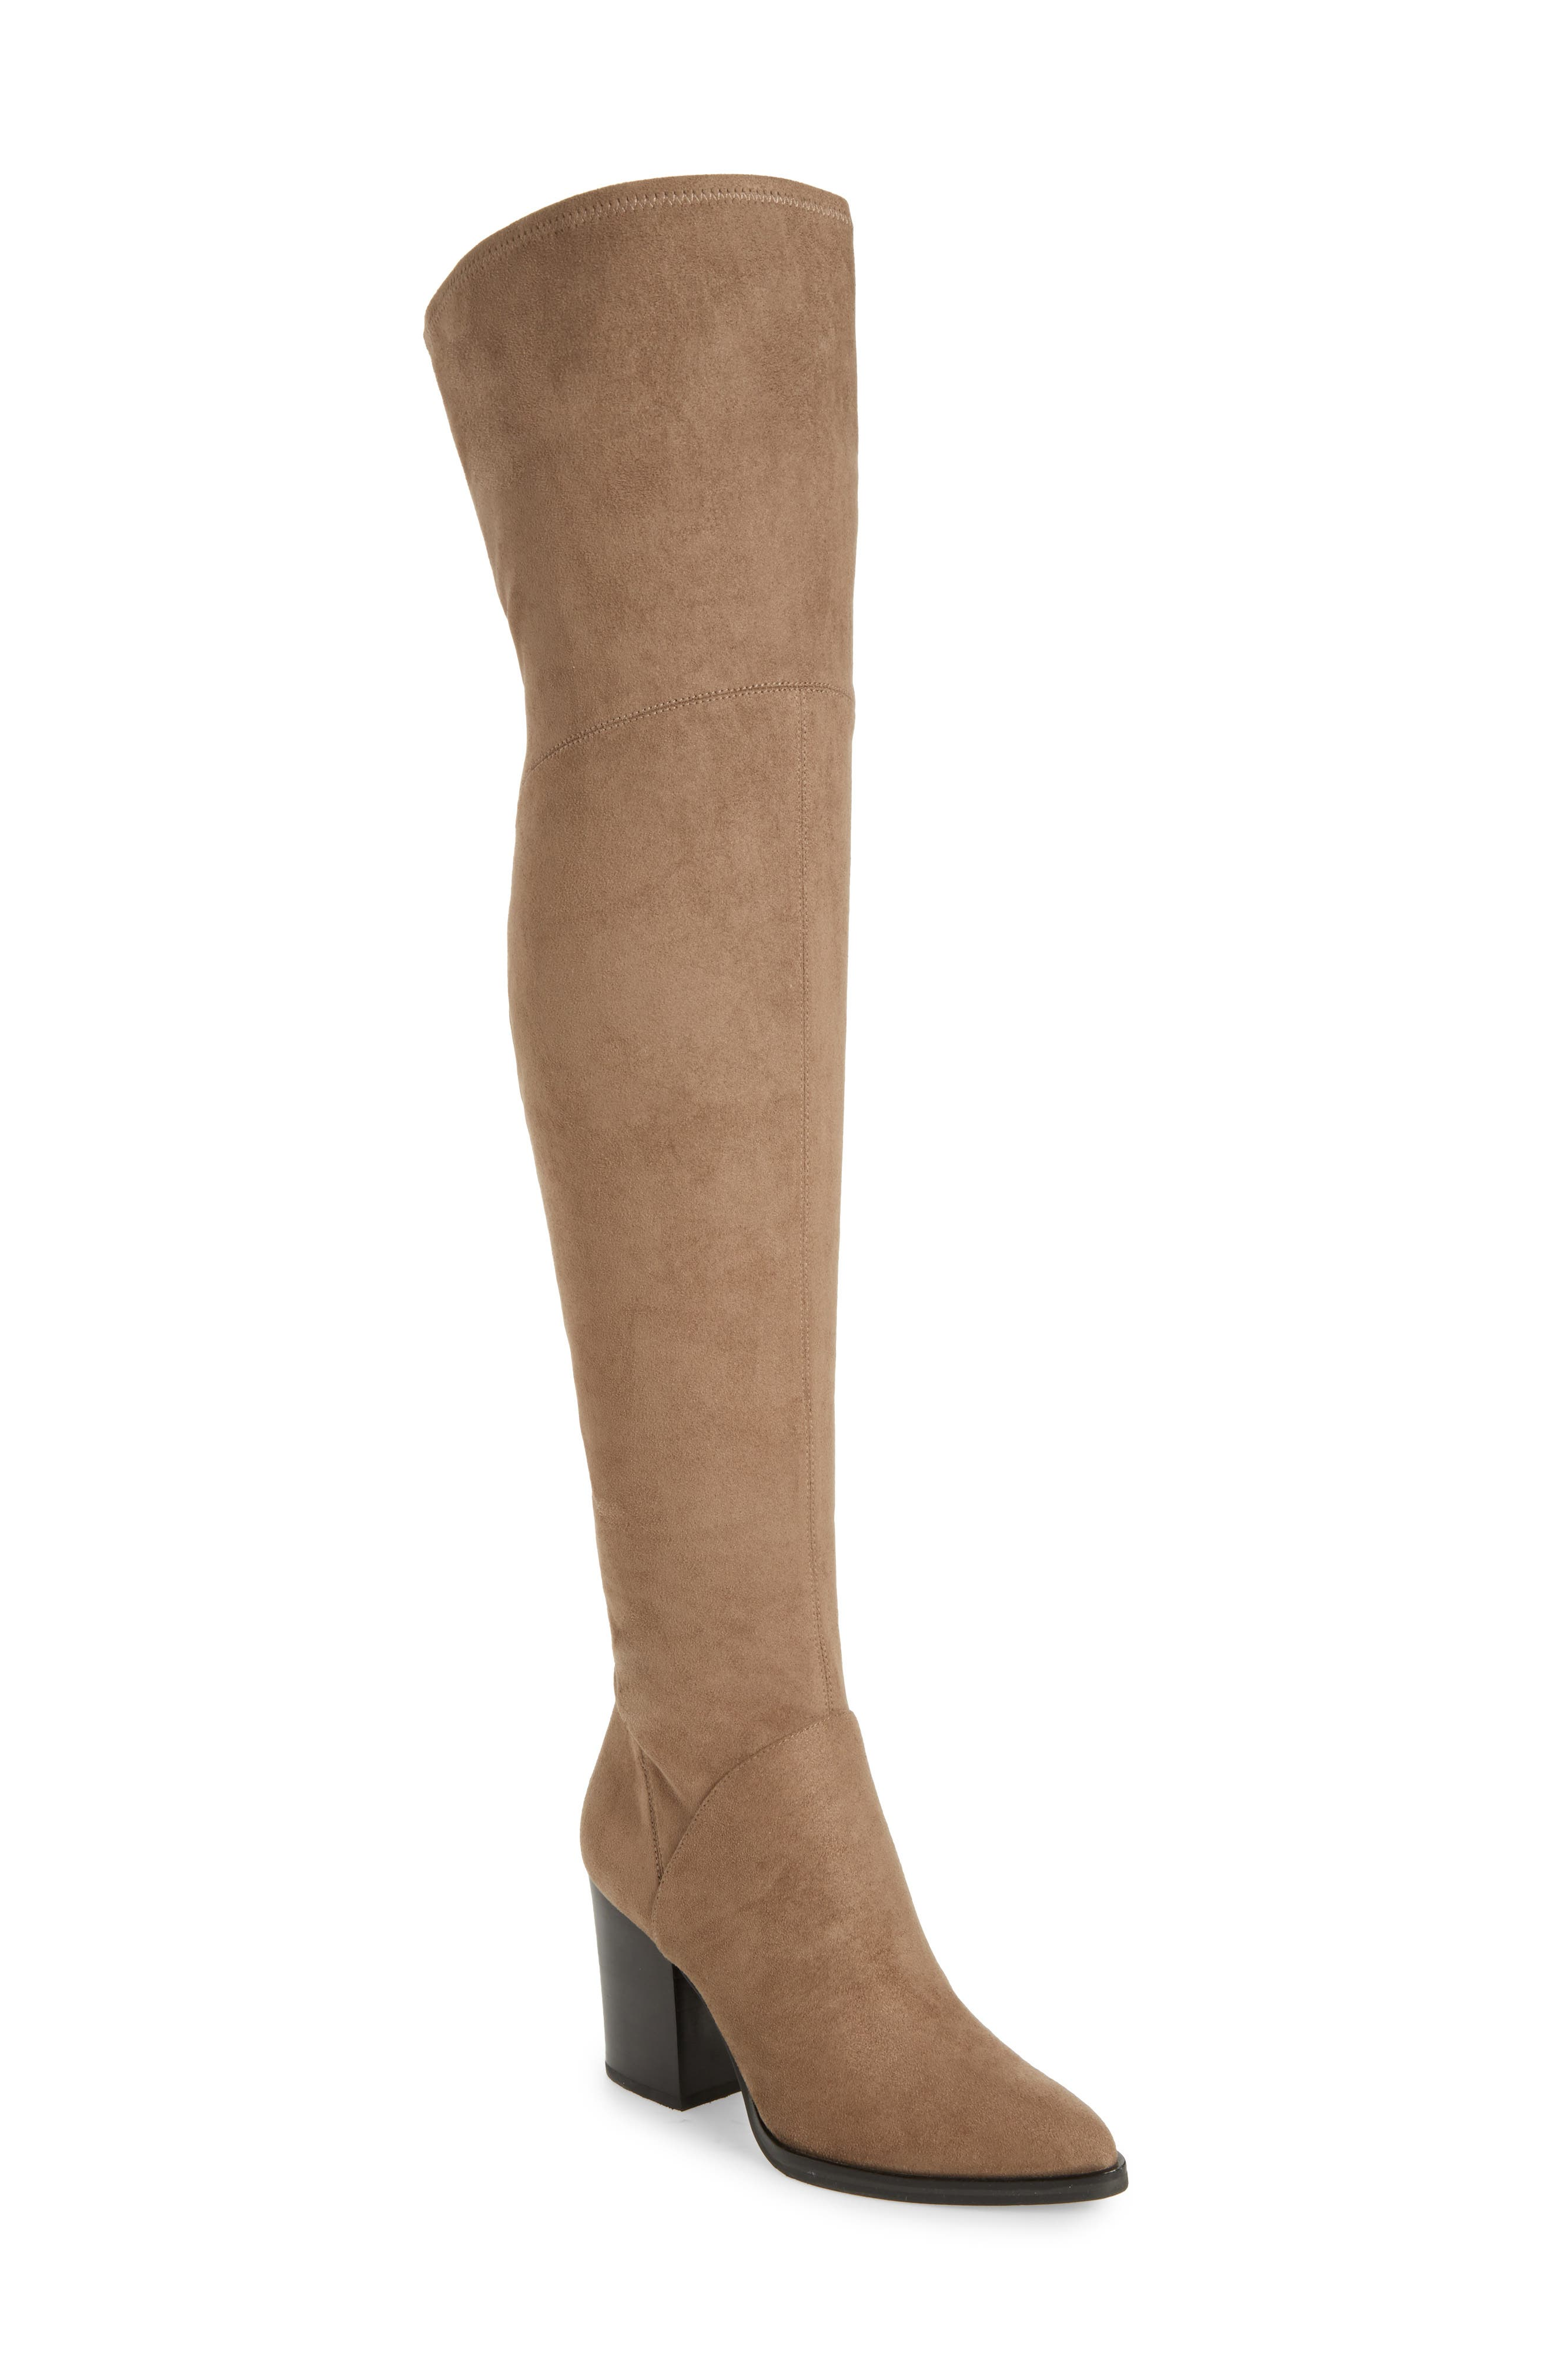 Arrine Over the Knee Boot,                             Main thumbnail 1, color,                             250